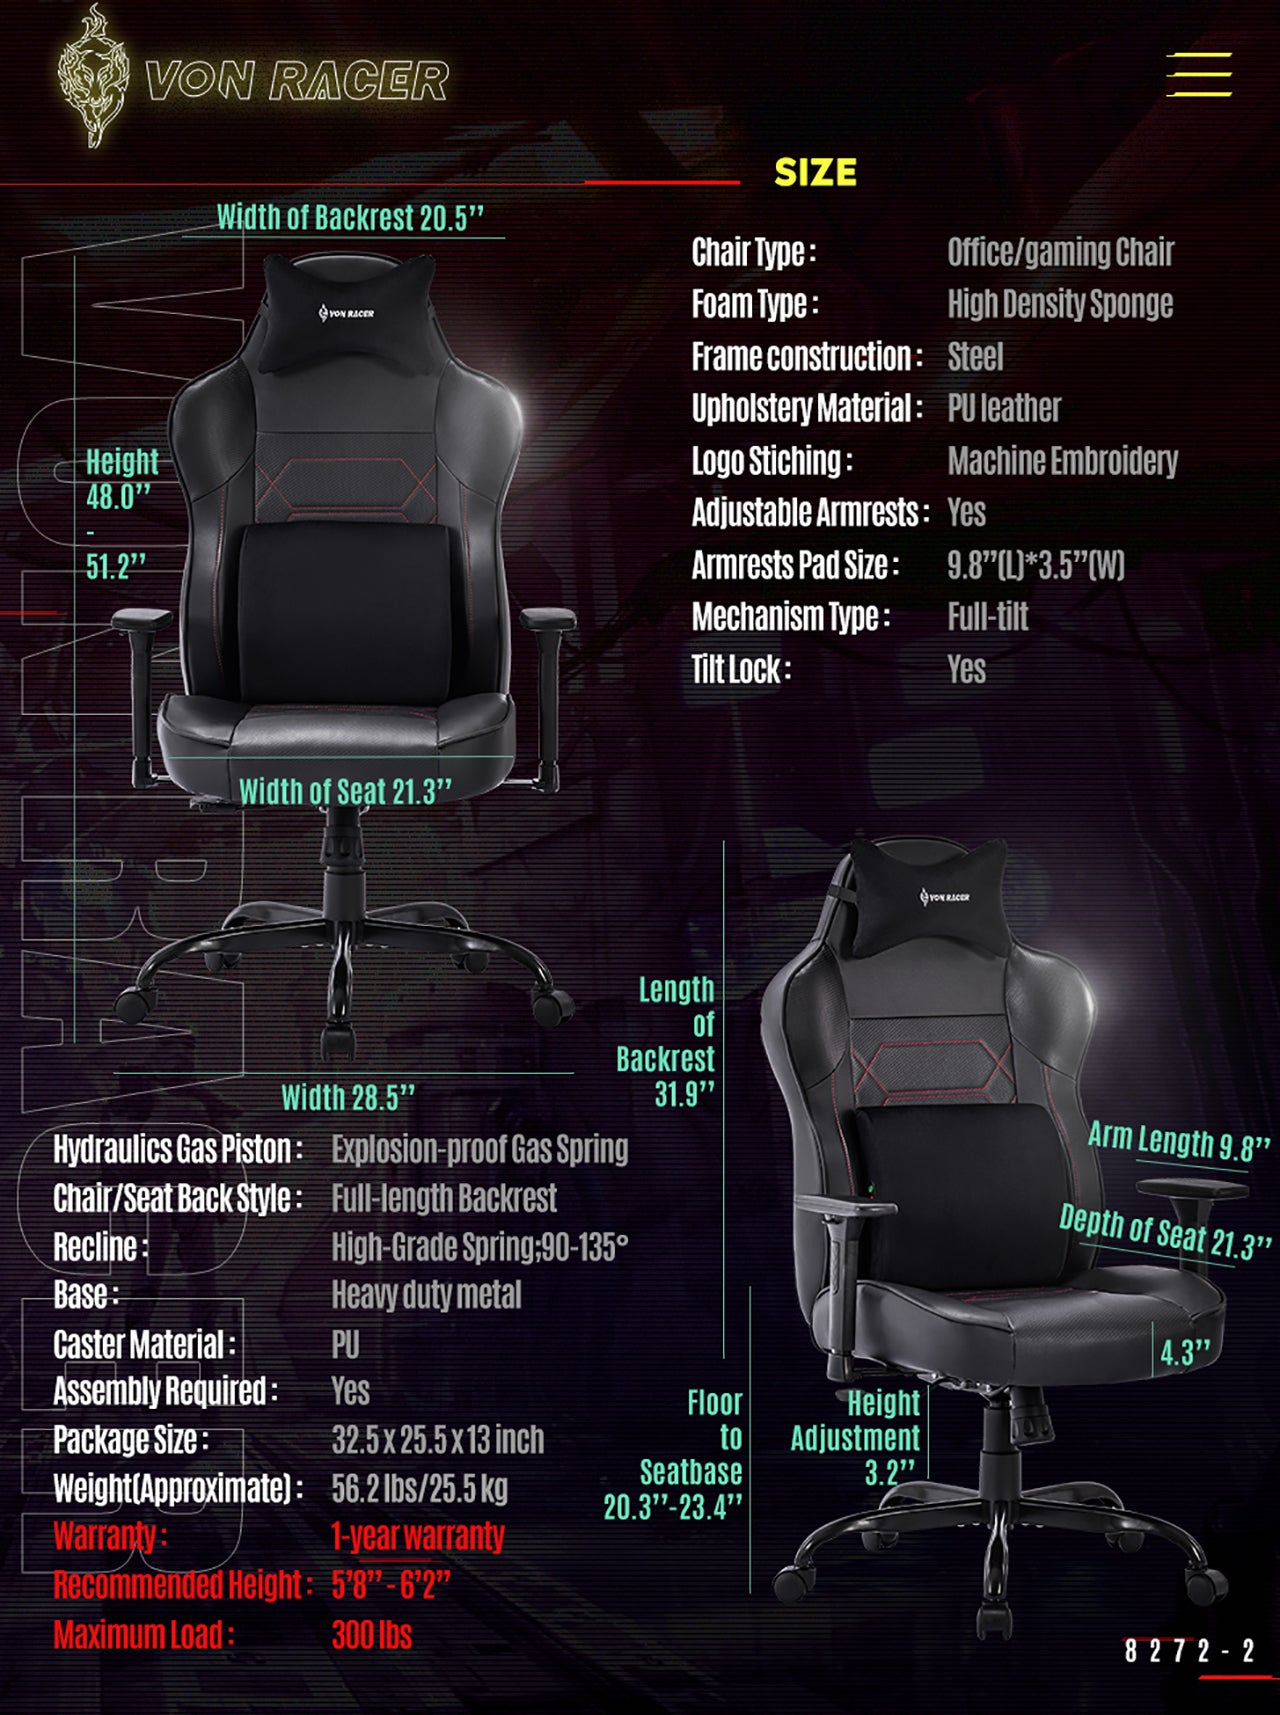 VON RACER MASSAGE GAMING CHAIR 8272 BLACK SPECIFICATION